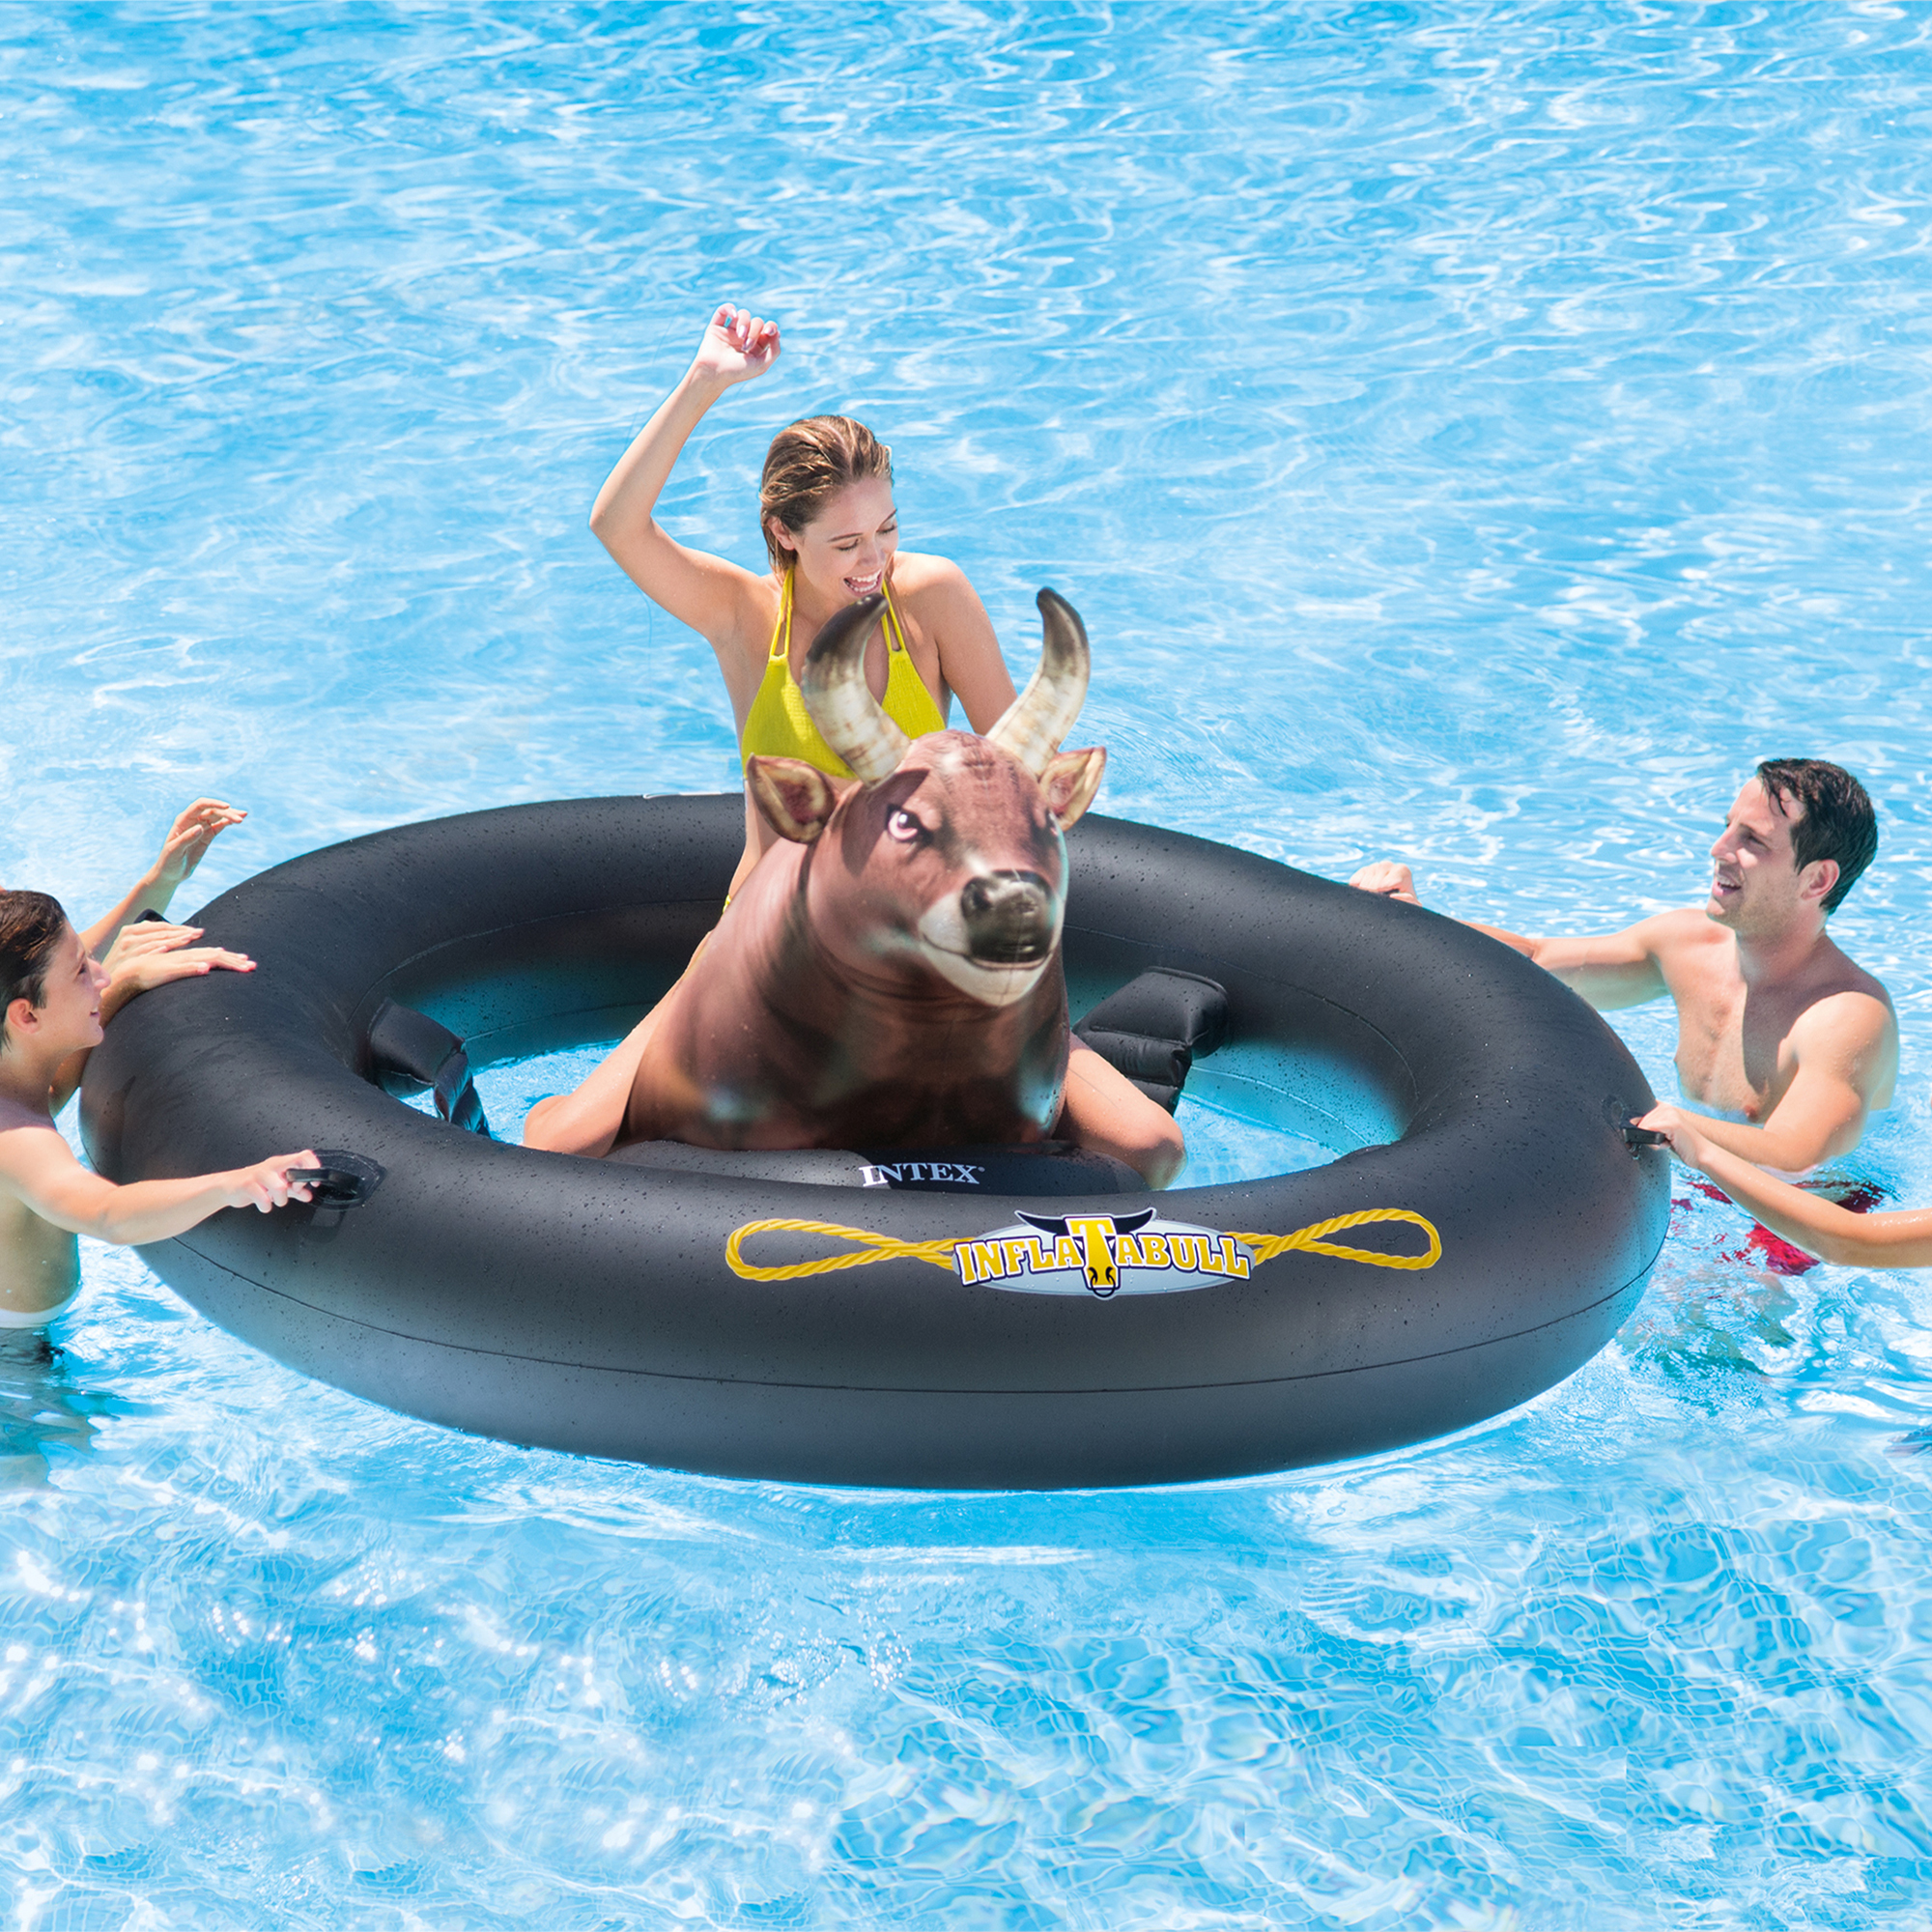 Intex giant inflatabull bull riding inflatable swimming pool float 56285ep Intex inflatable swimming pool